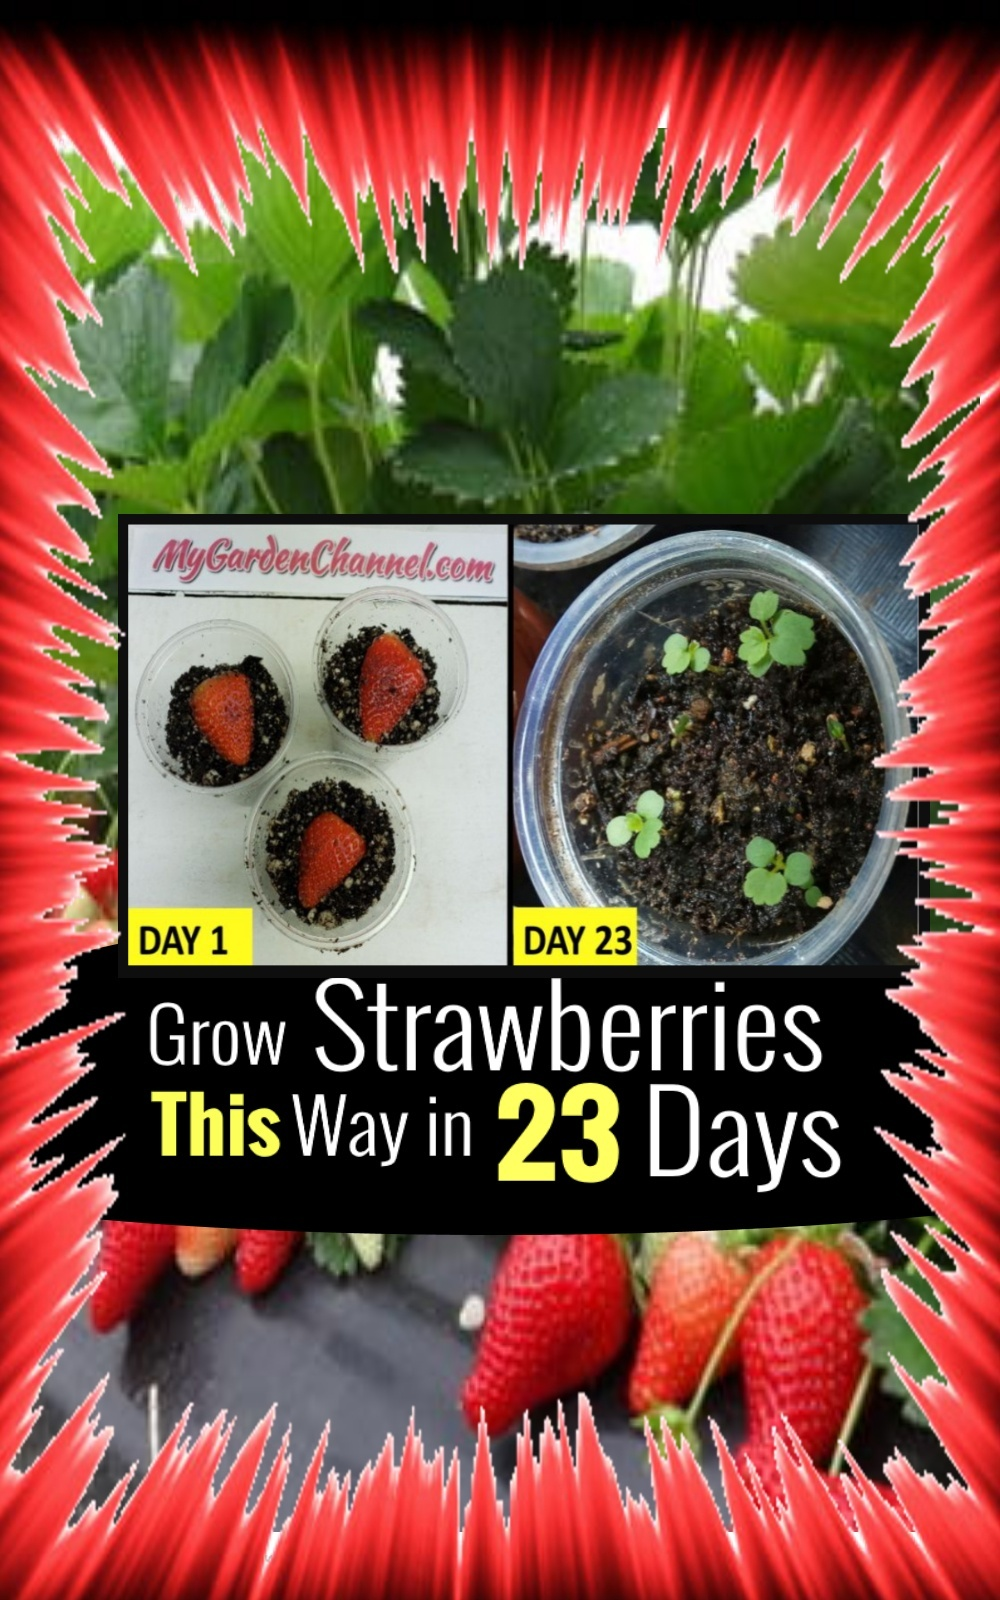 How To Grow Strawberries From Seeds (Try This)